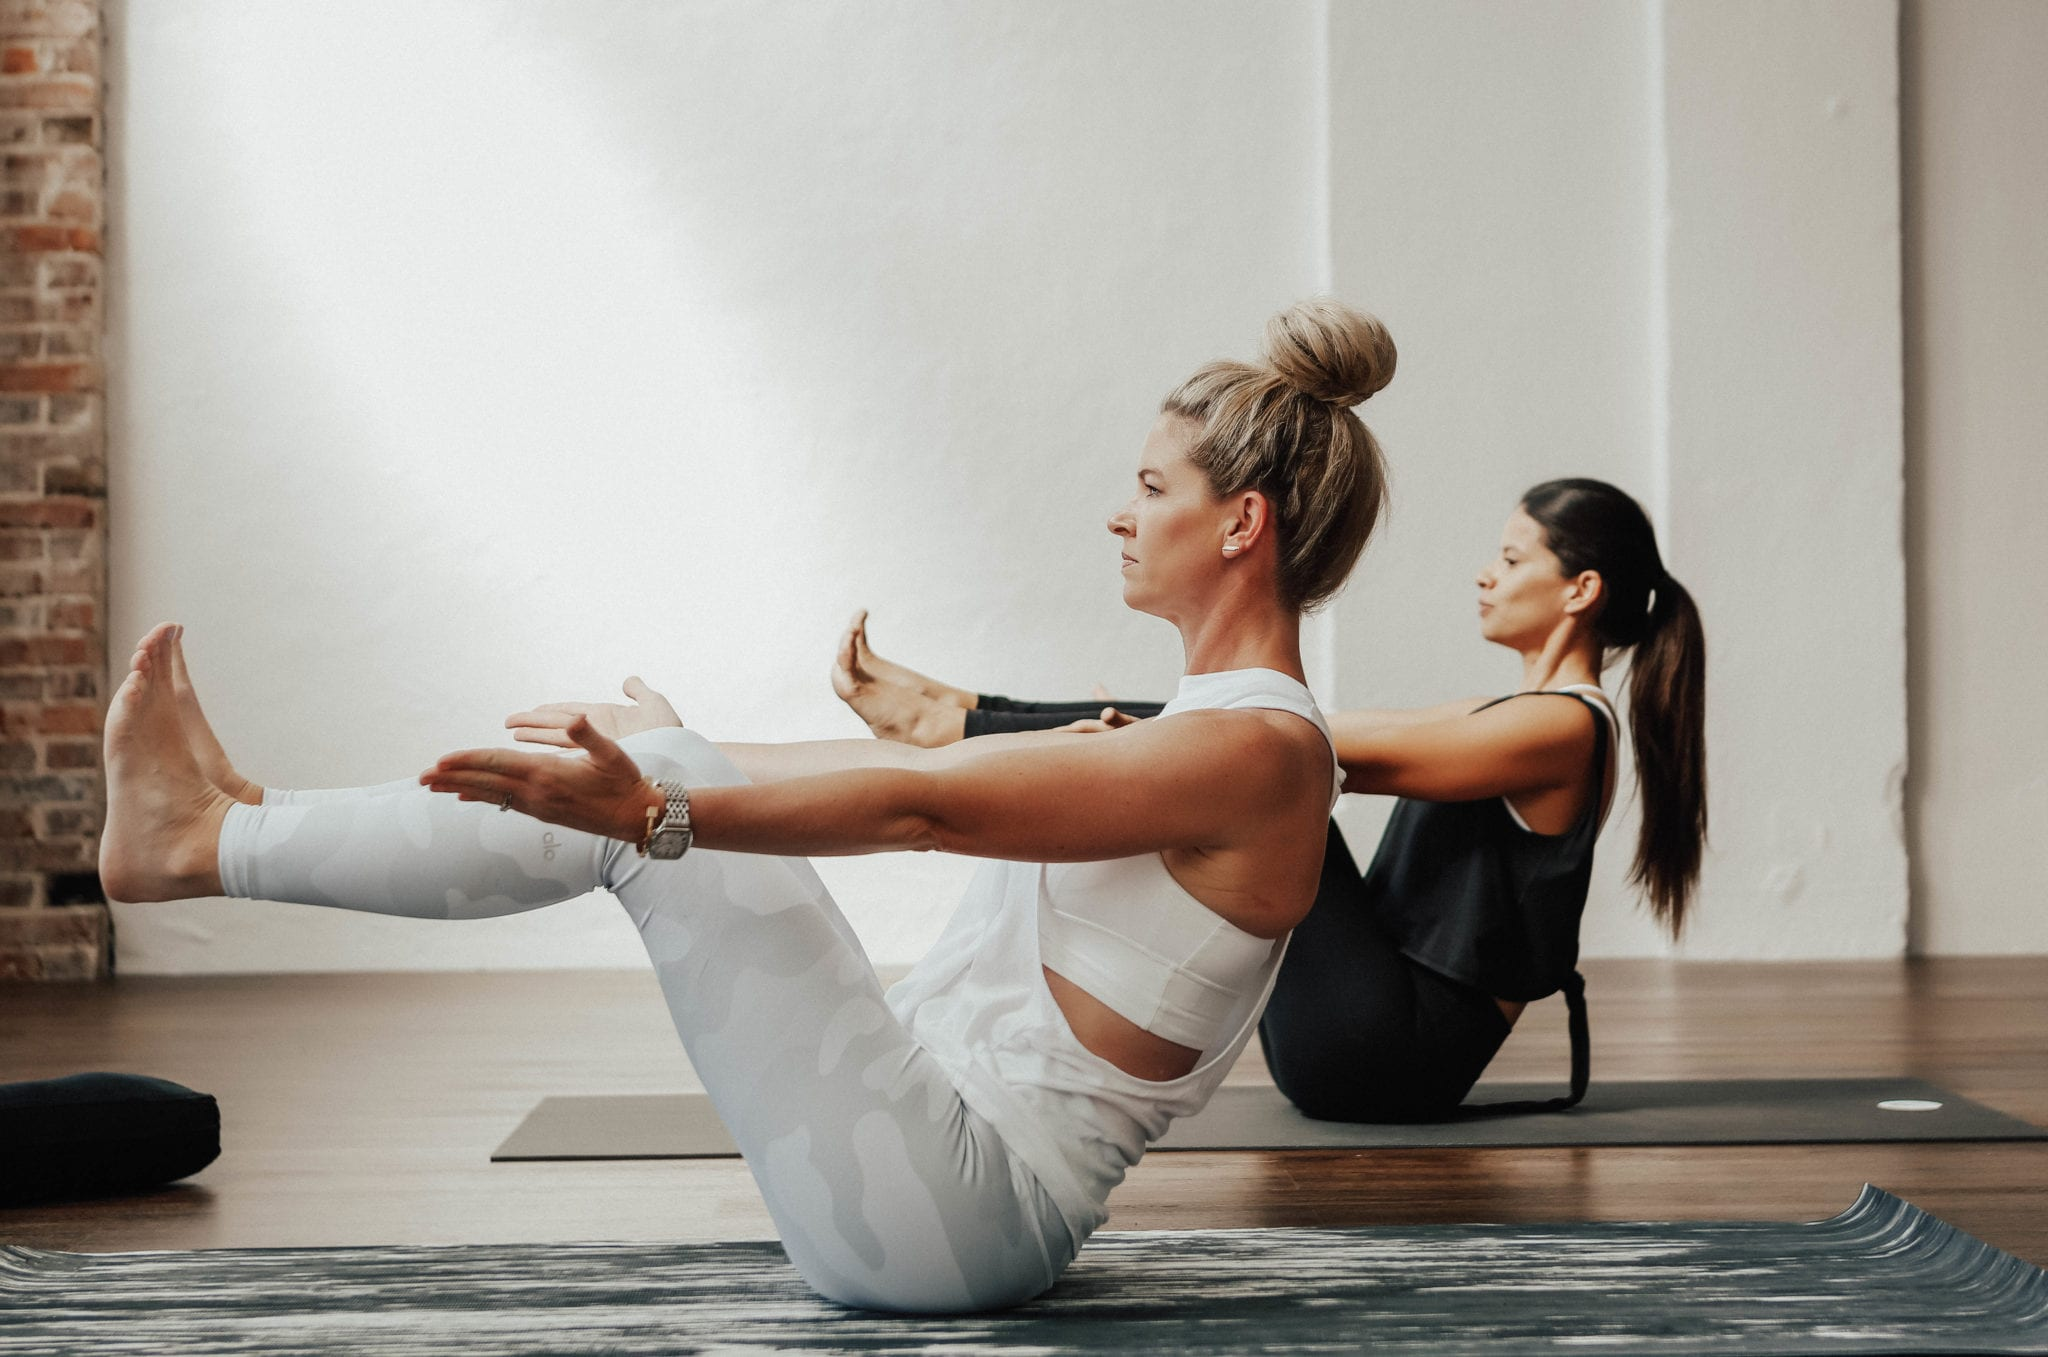 Mandy Cox is wearing a white Alo Yoga Top and Pants